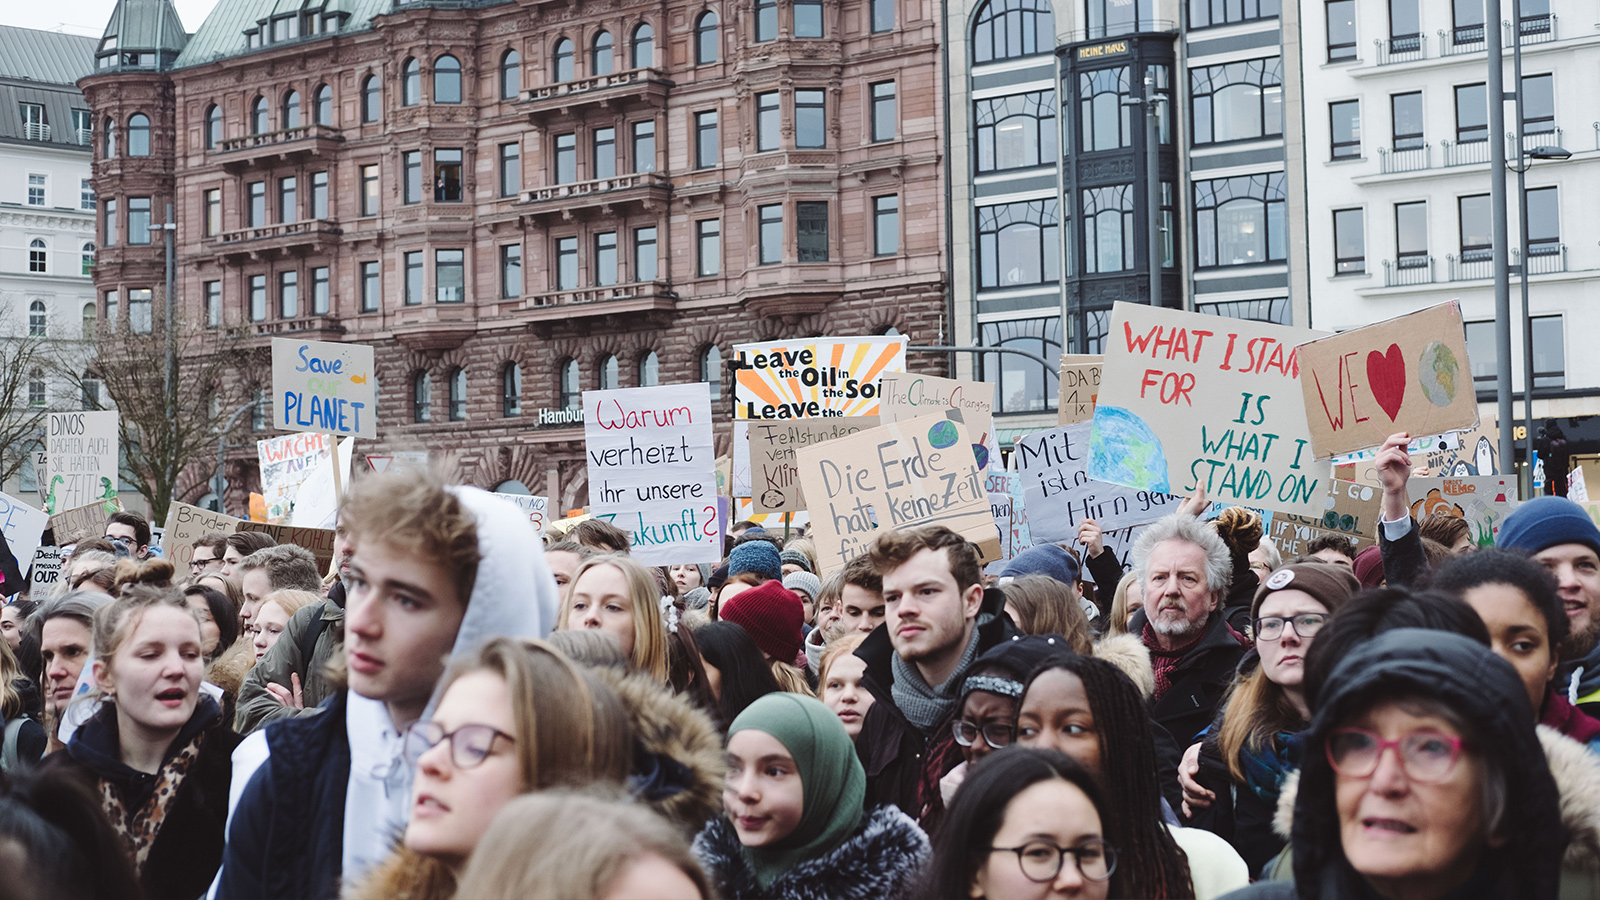 ecosia-joins-climate-strike-march-fridays-for-the-future-greta-thunberg-8